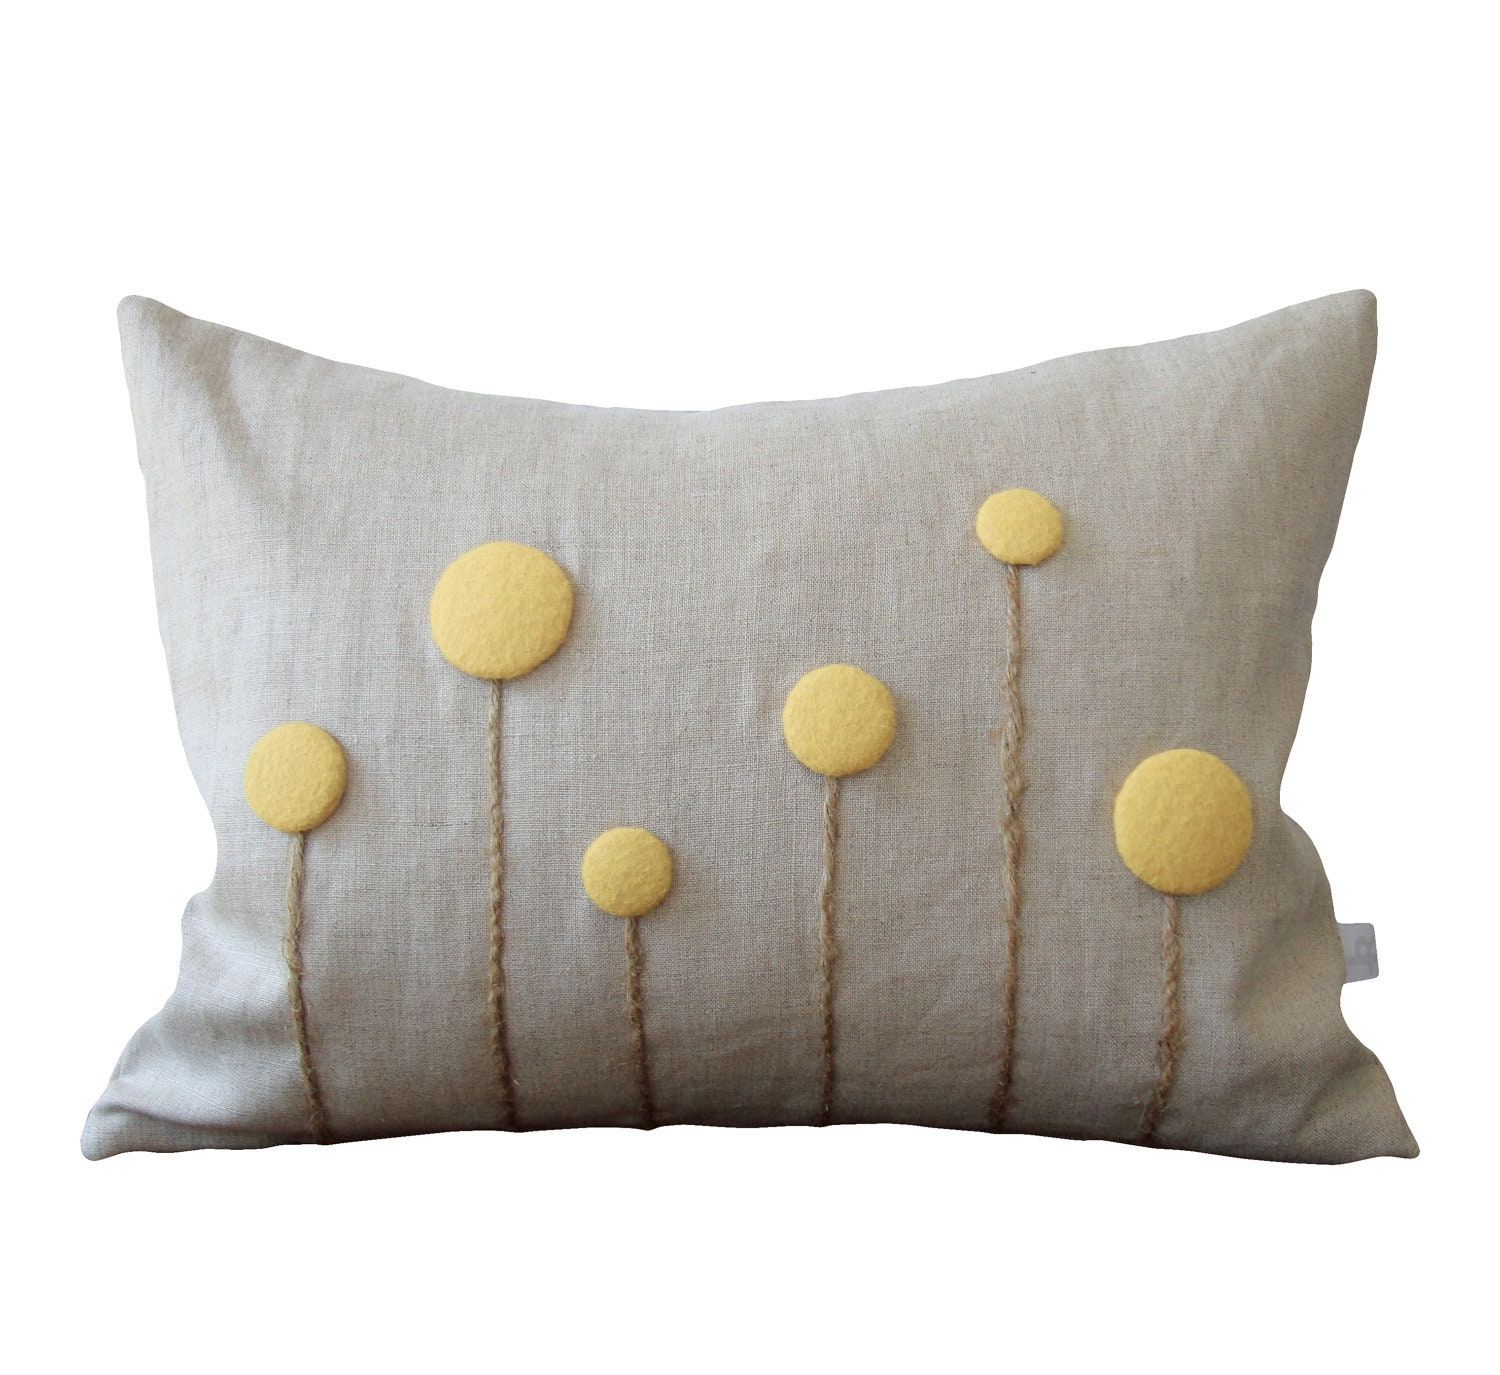 Pale Yellow Billy Ball Flower Pillow in Natural Linen by JillianReneDecor Craspedia Billy Button Botanical Home Decor Pastel - JillianReneDecor